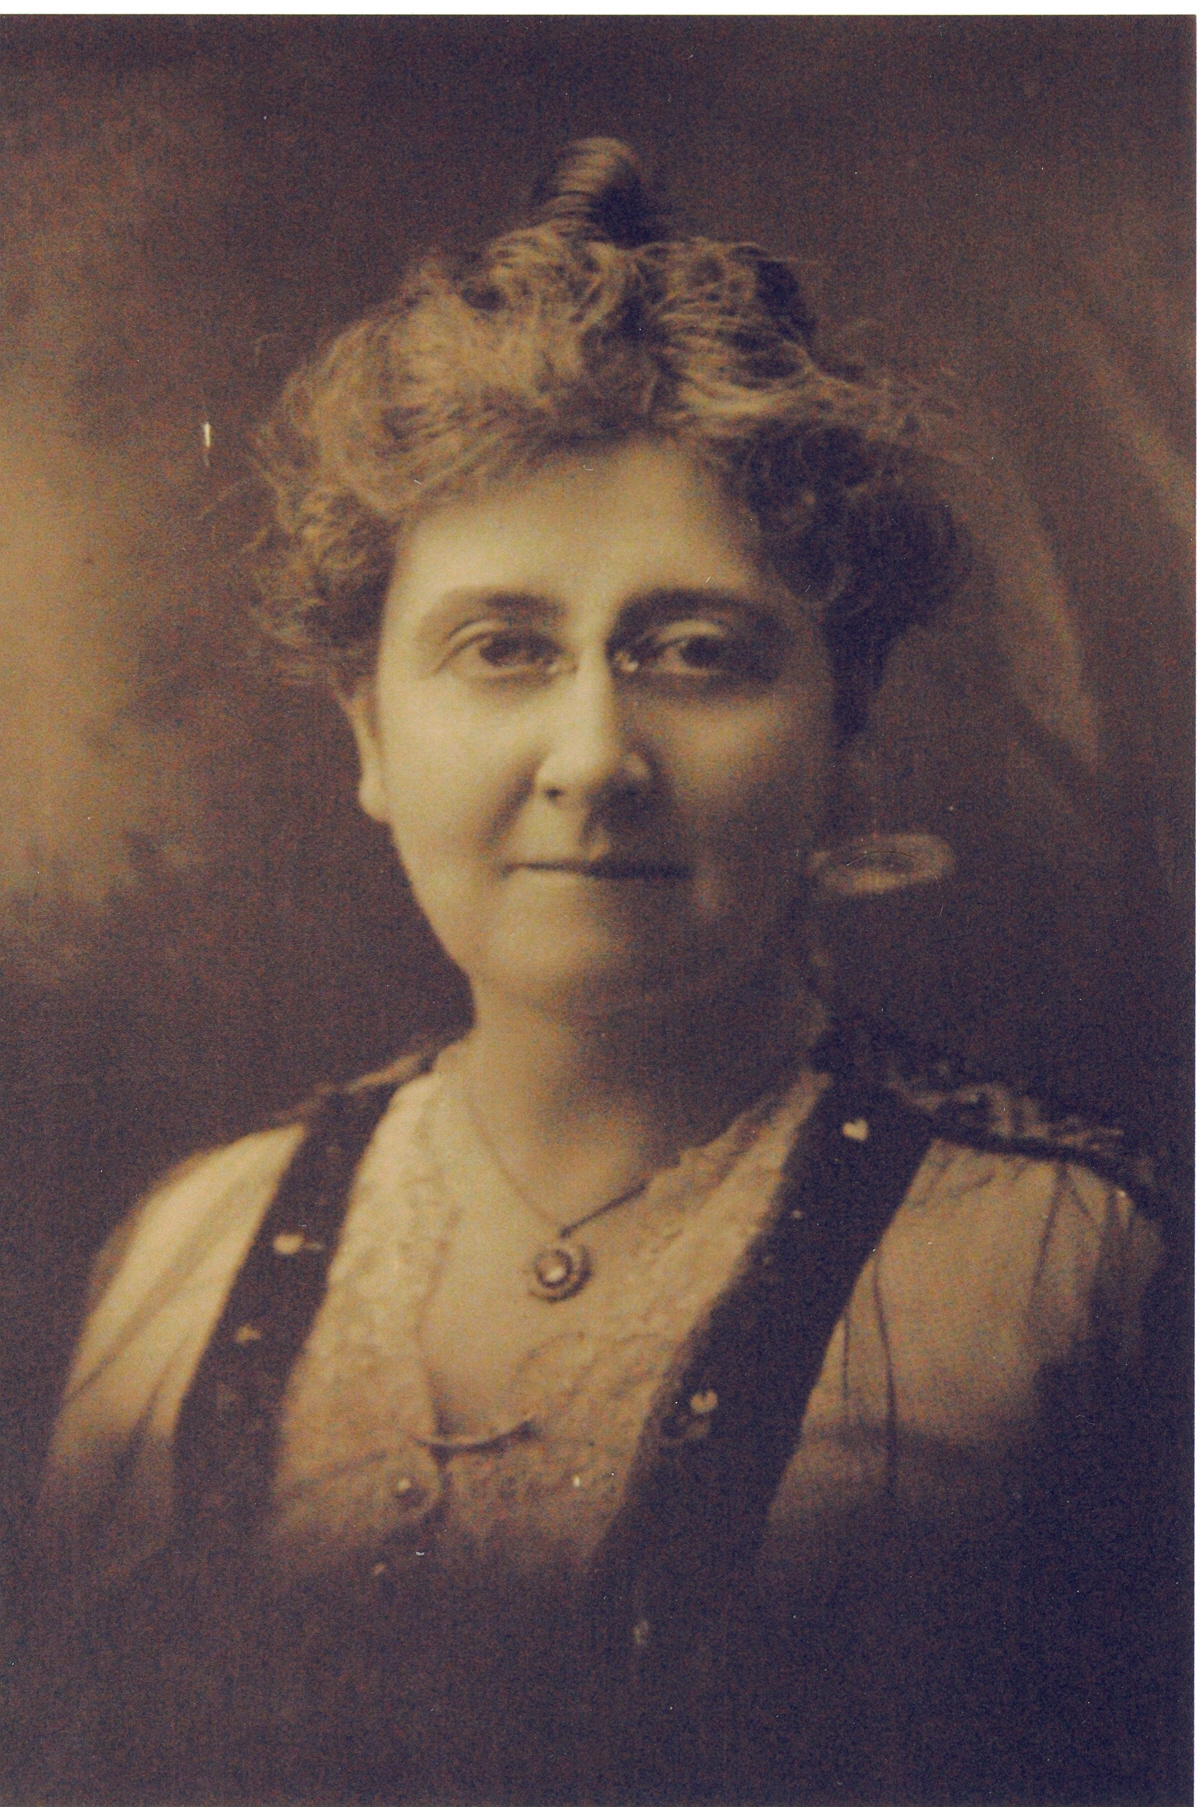 Photo of Alma Reid McGlenn